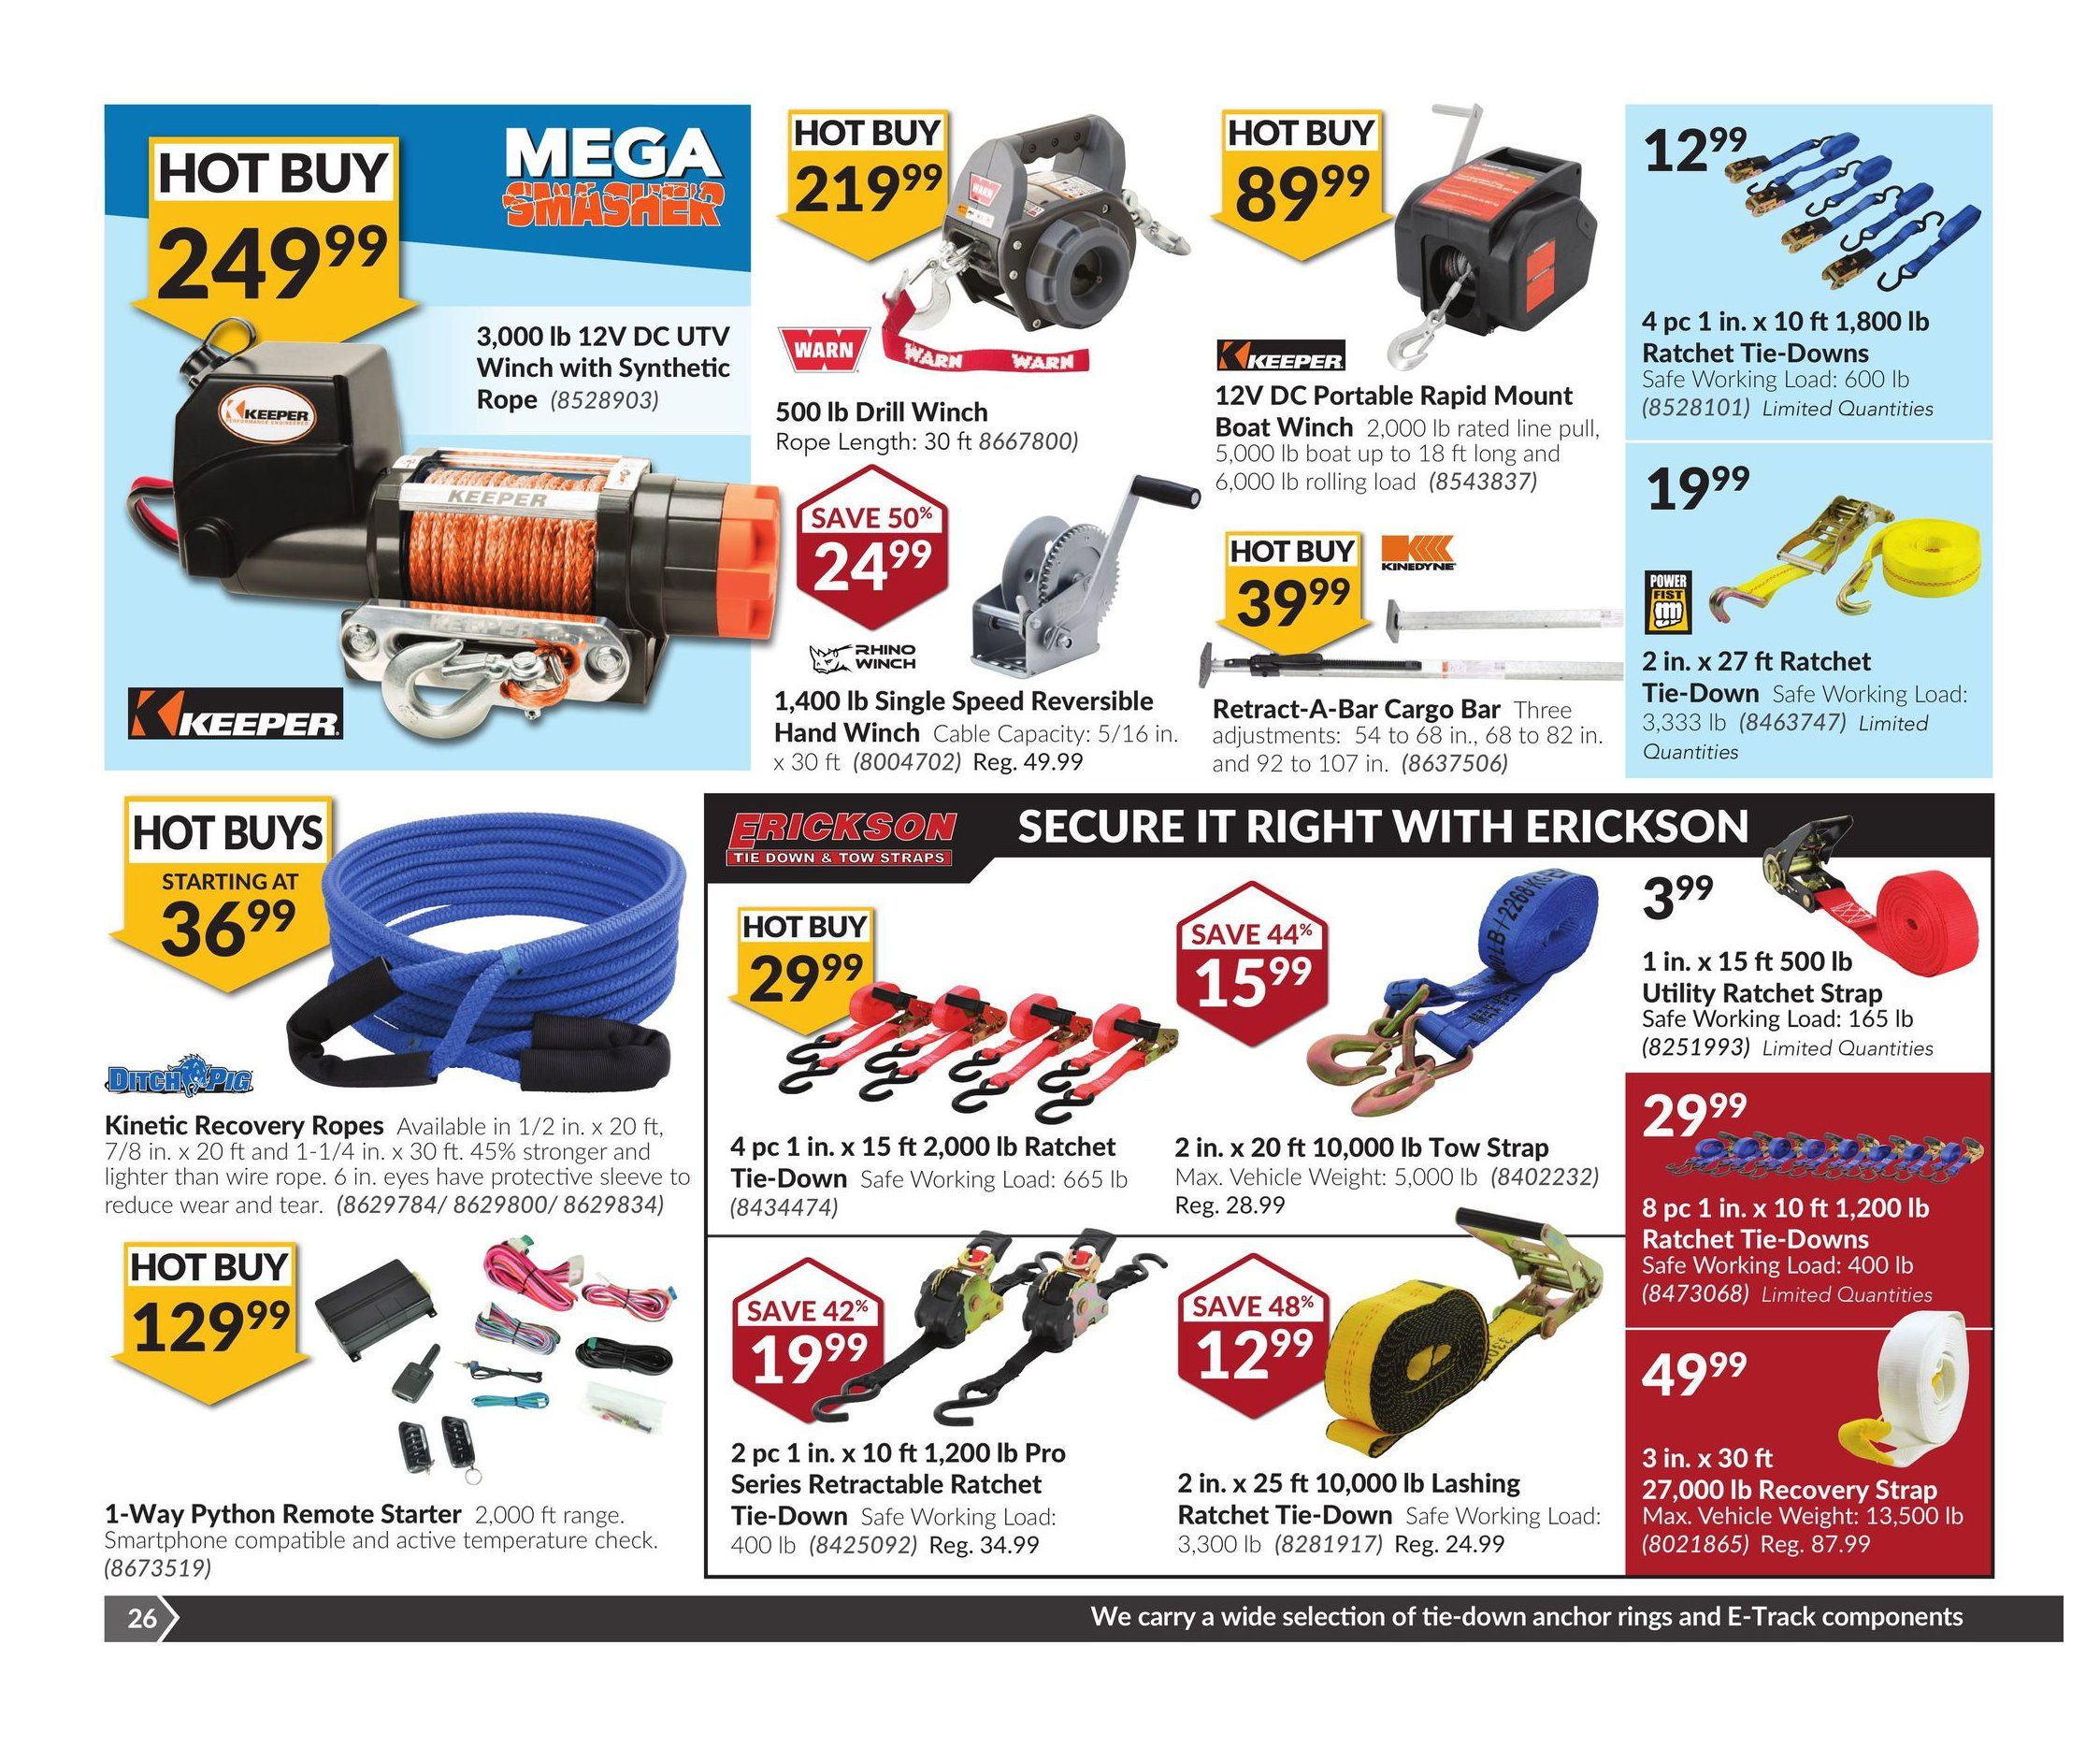 Princess Auto Weekly Flyer Mega Smasher Father s Day Edition